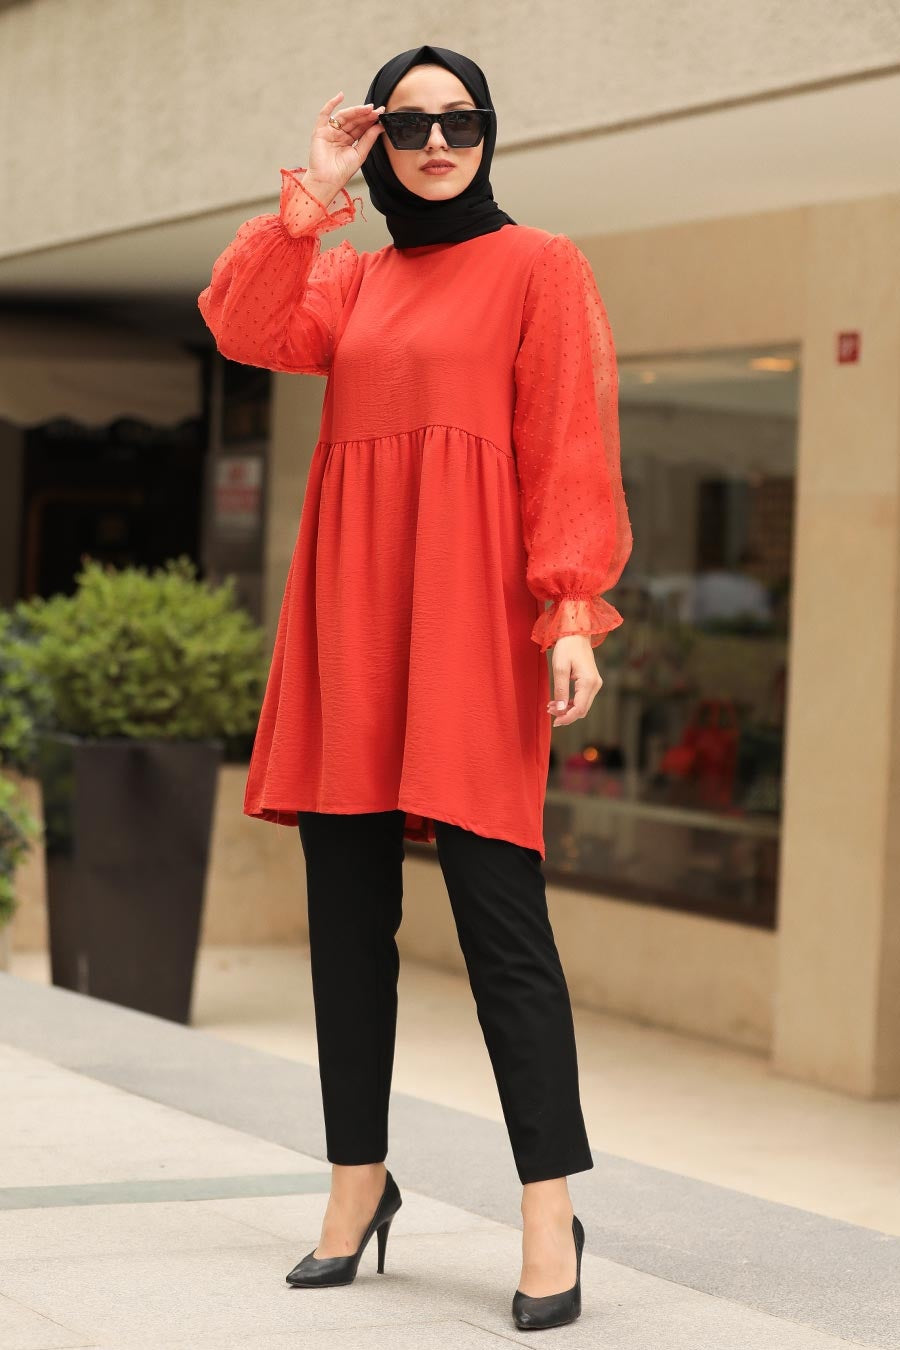 Women's Sleeve Detail Tile Red Modest Tunic